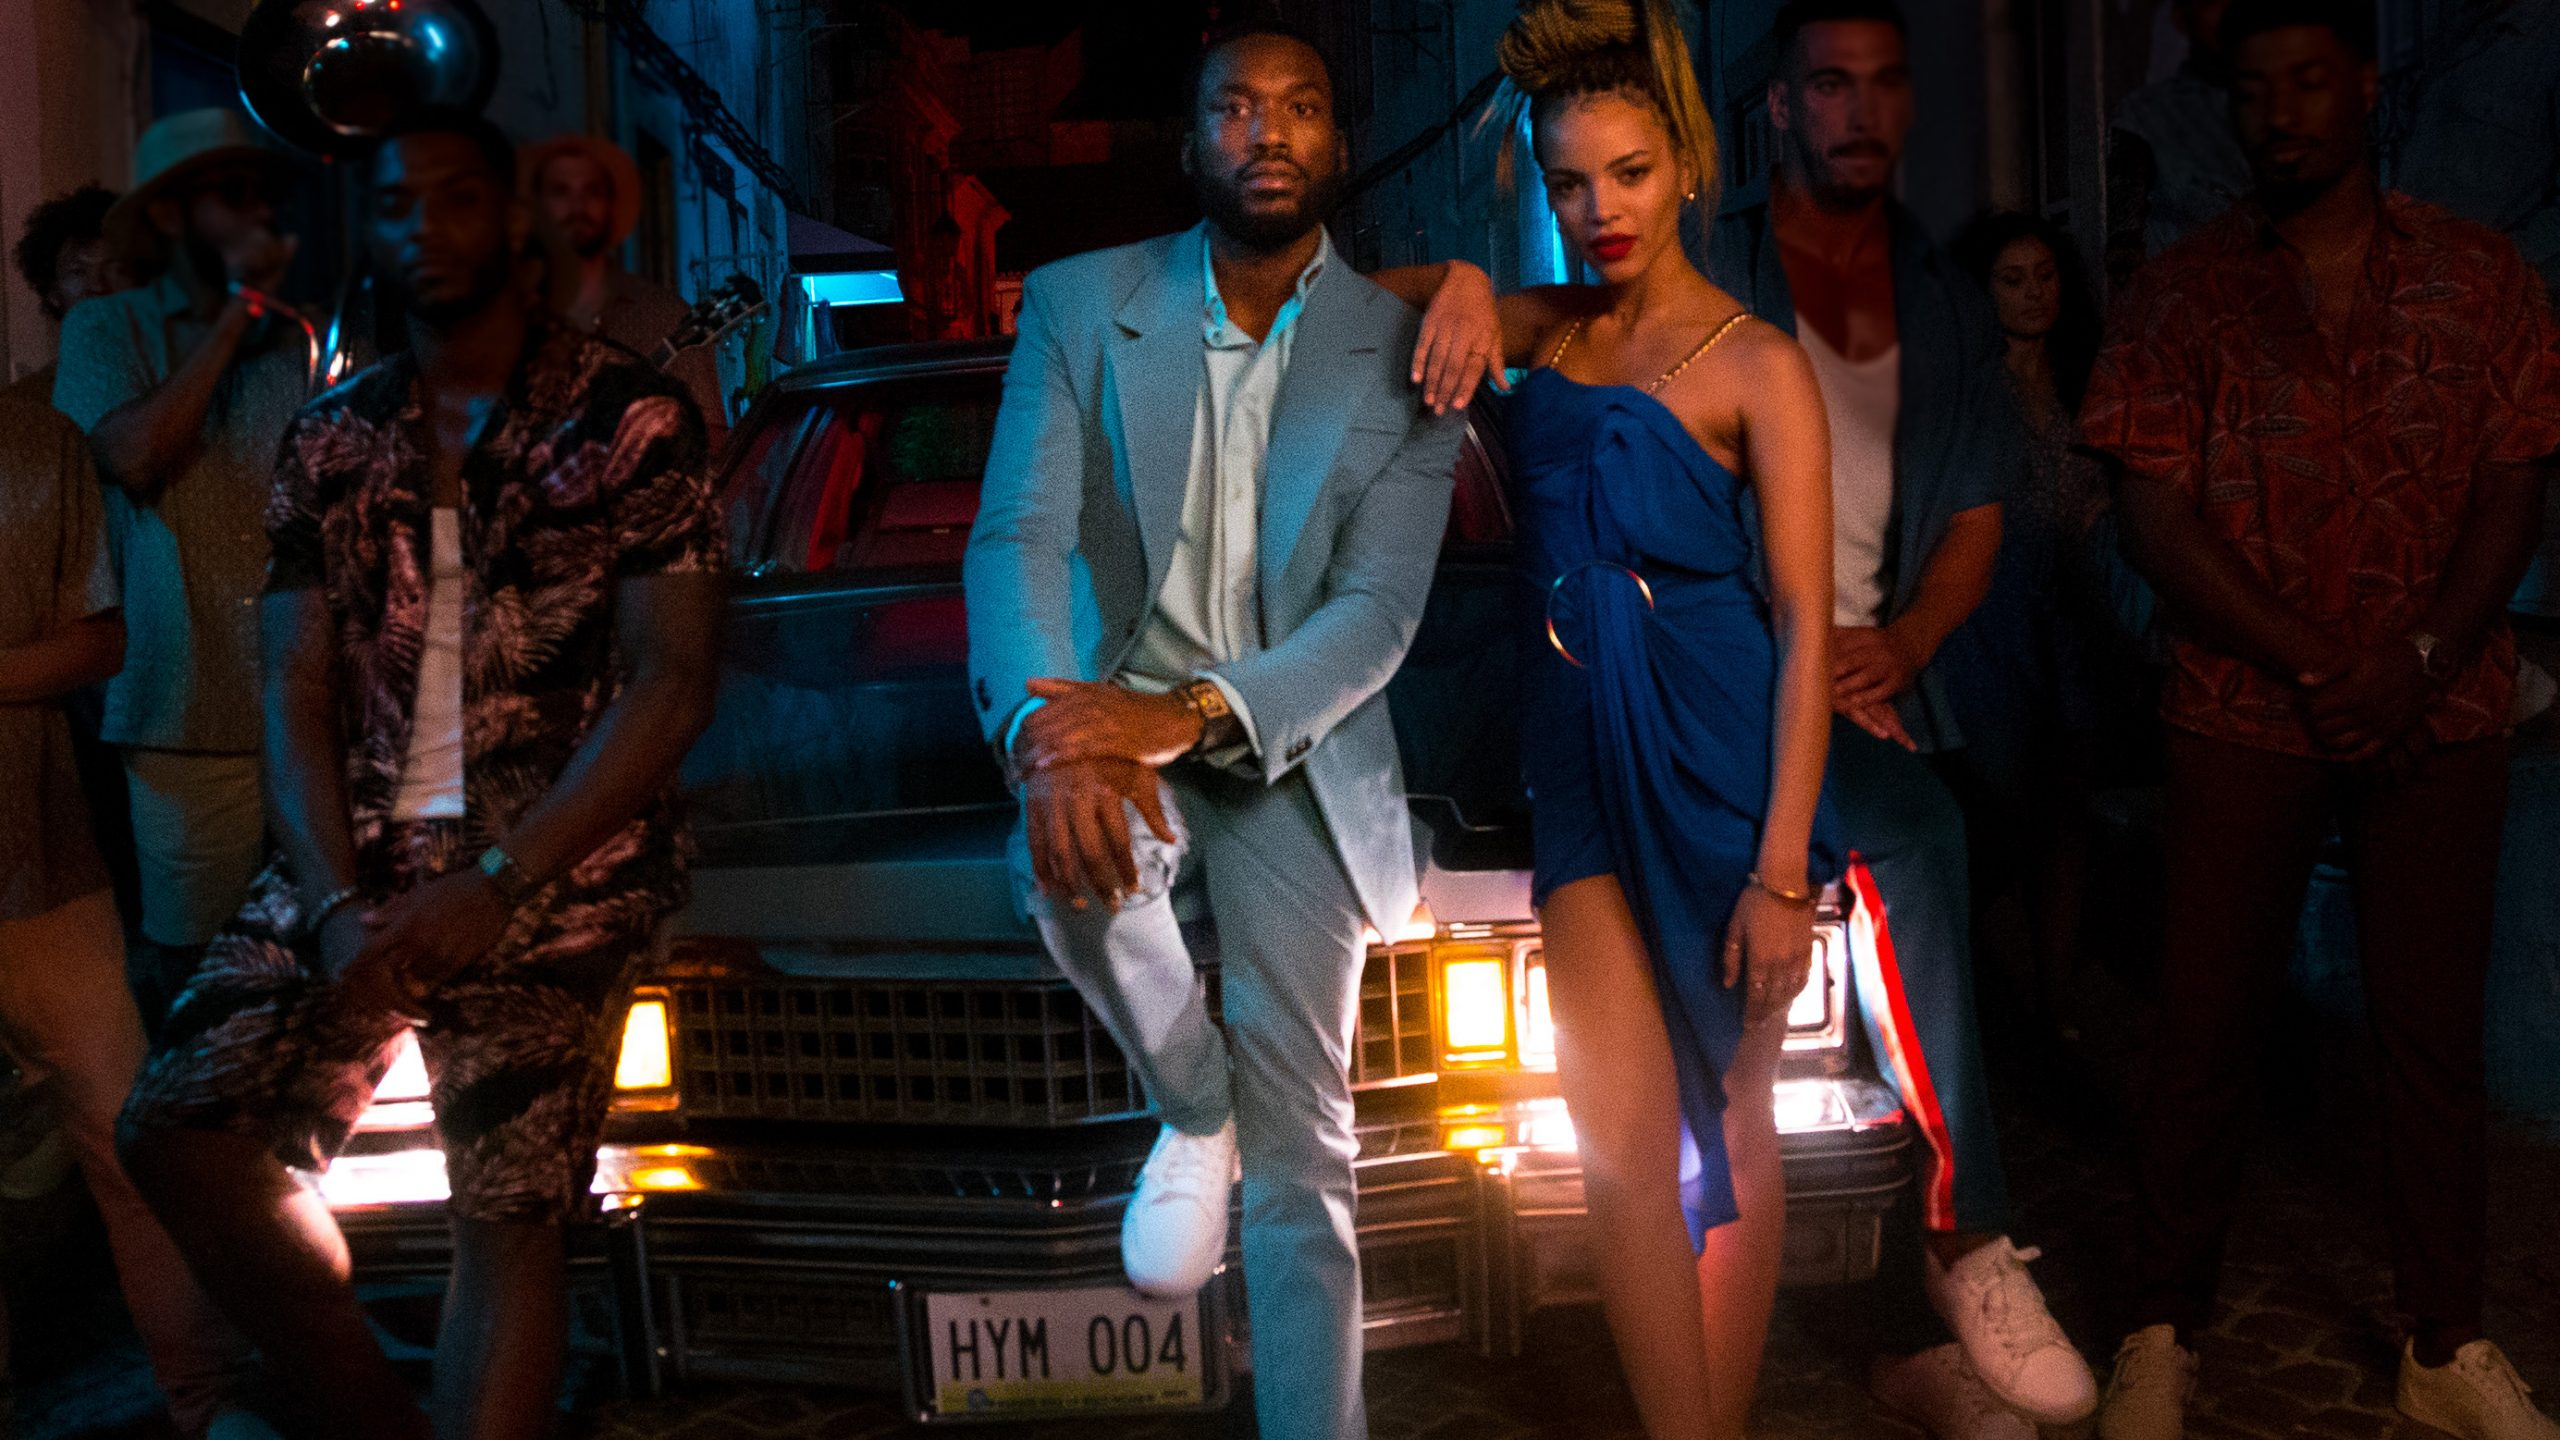 BACARDI Conga Feat. You with Meek Mill and Leslie Grace